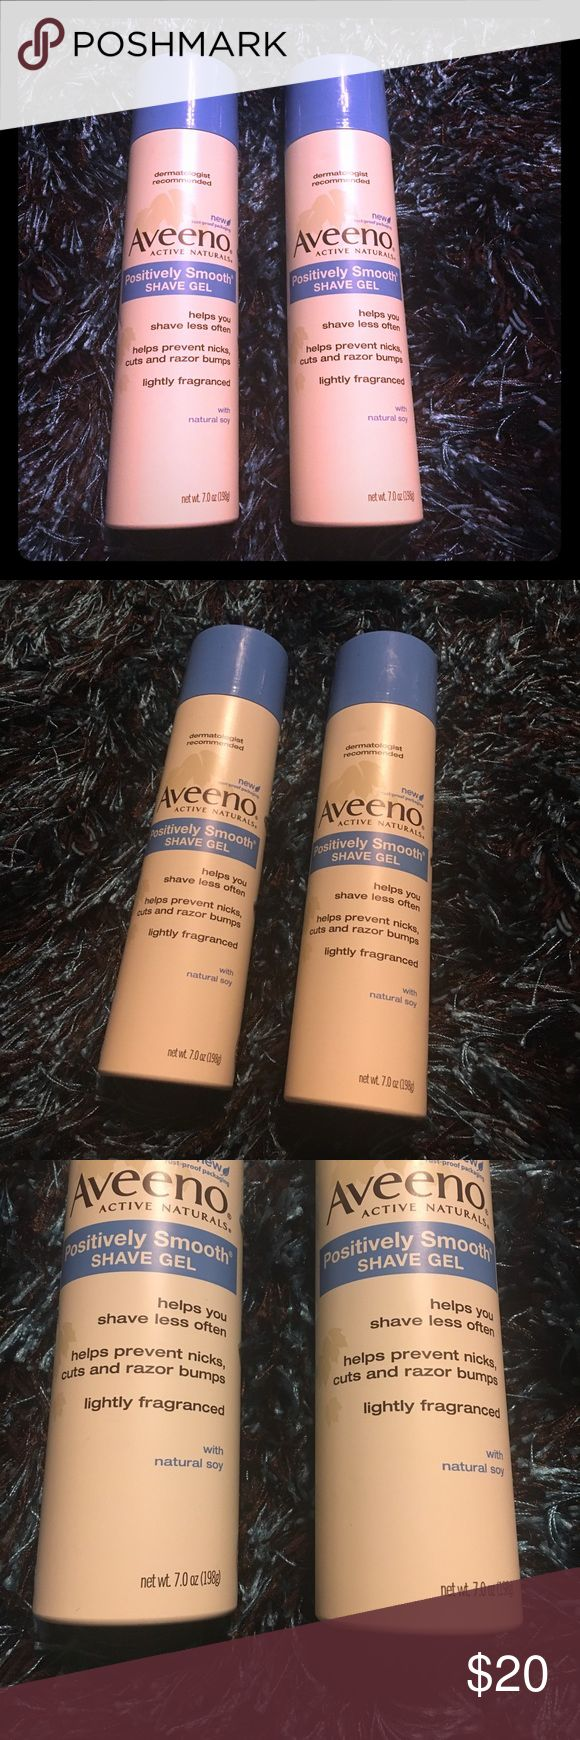 Aveeno Positively Smooth Shave Gel 🛍🎀 Aveeno Positively Smooth Shave Gel Cans. Includes two. One used twice, other never used. Helps you shave less often. Fullsize 7.0 oz Aveeno Makeup Brushes & Tools